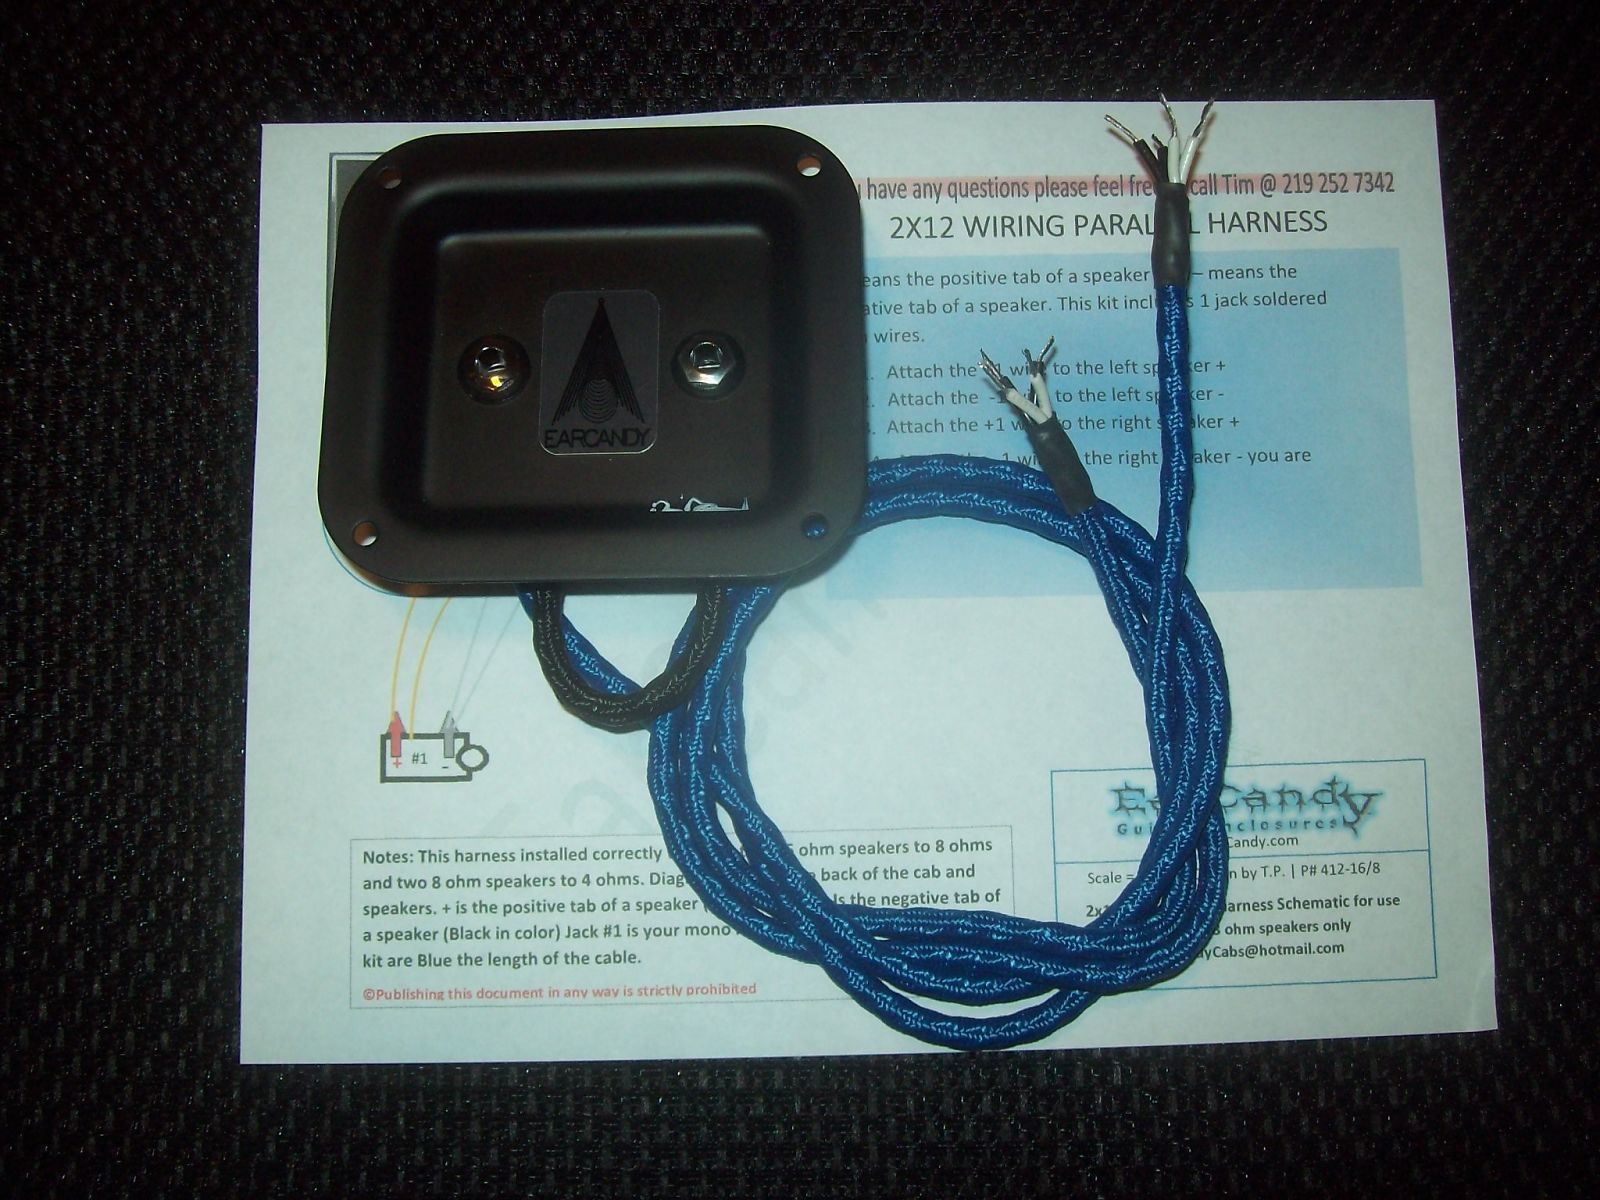 earcandy 2x10 2x12 guitar speaker high definition wiring harness w jack  plate & hardware - parallel